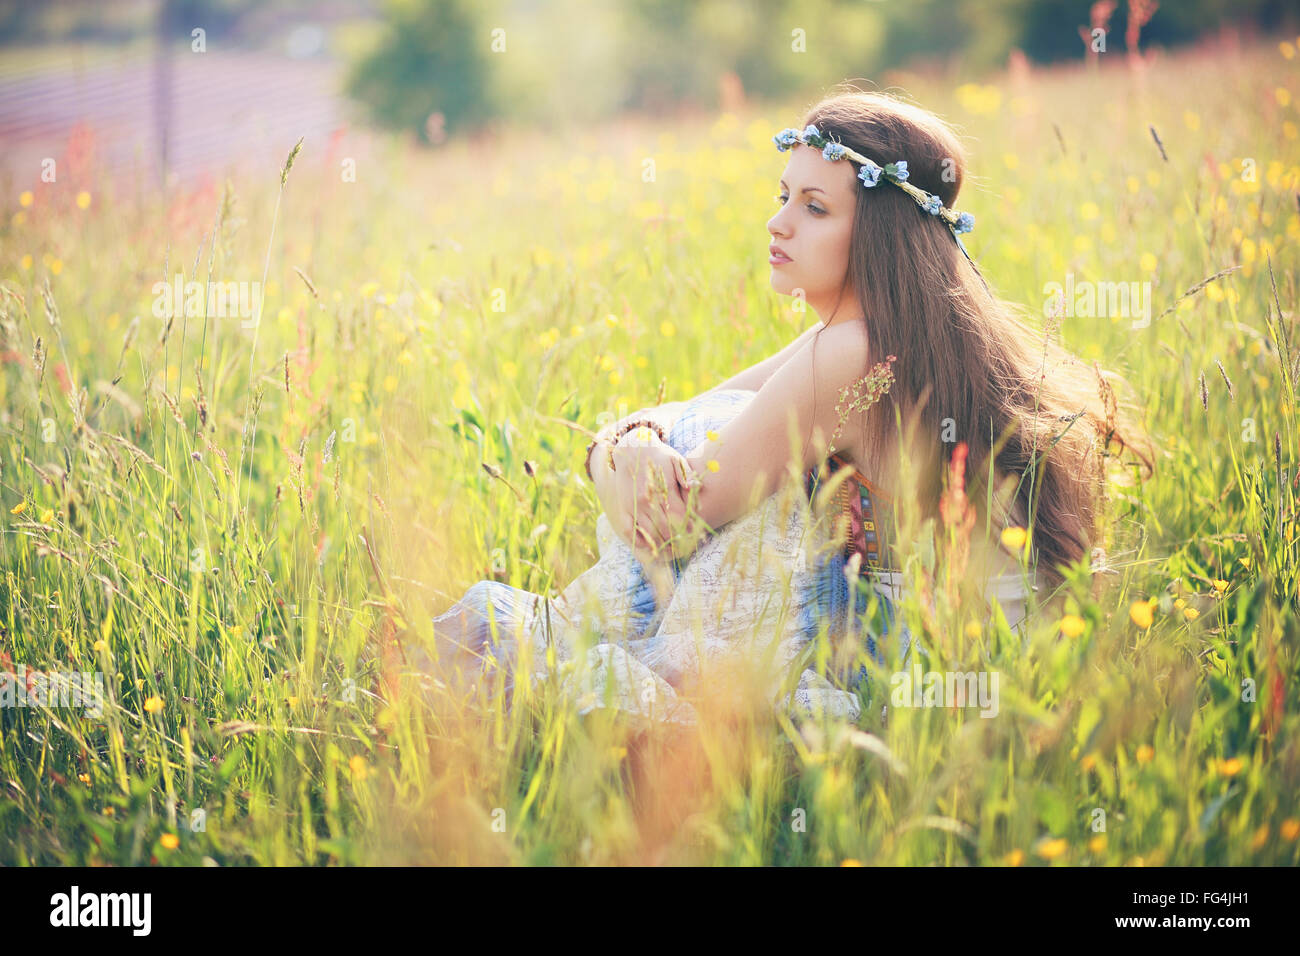 Young woman enjoying spring weather in flower field . Hippie and gypsy dress - Stock Image